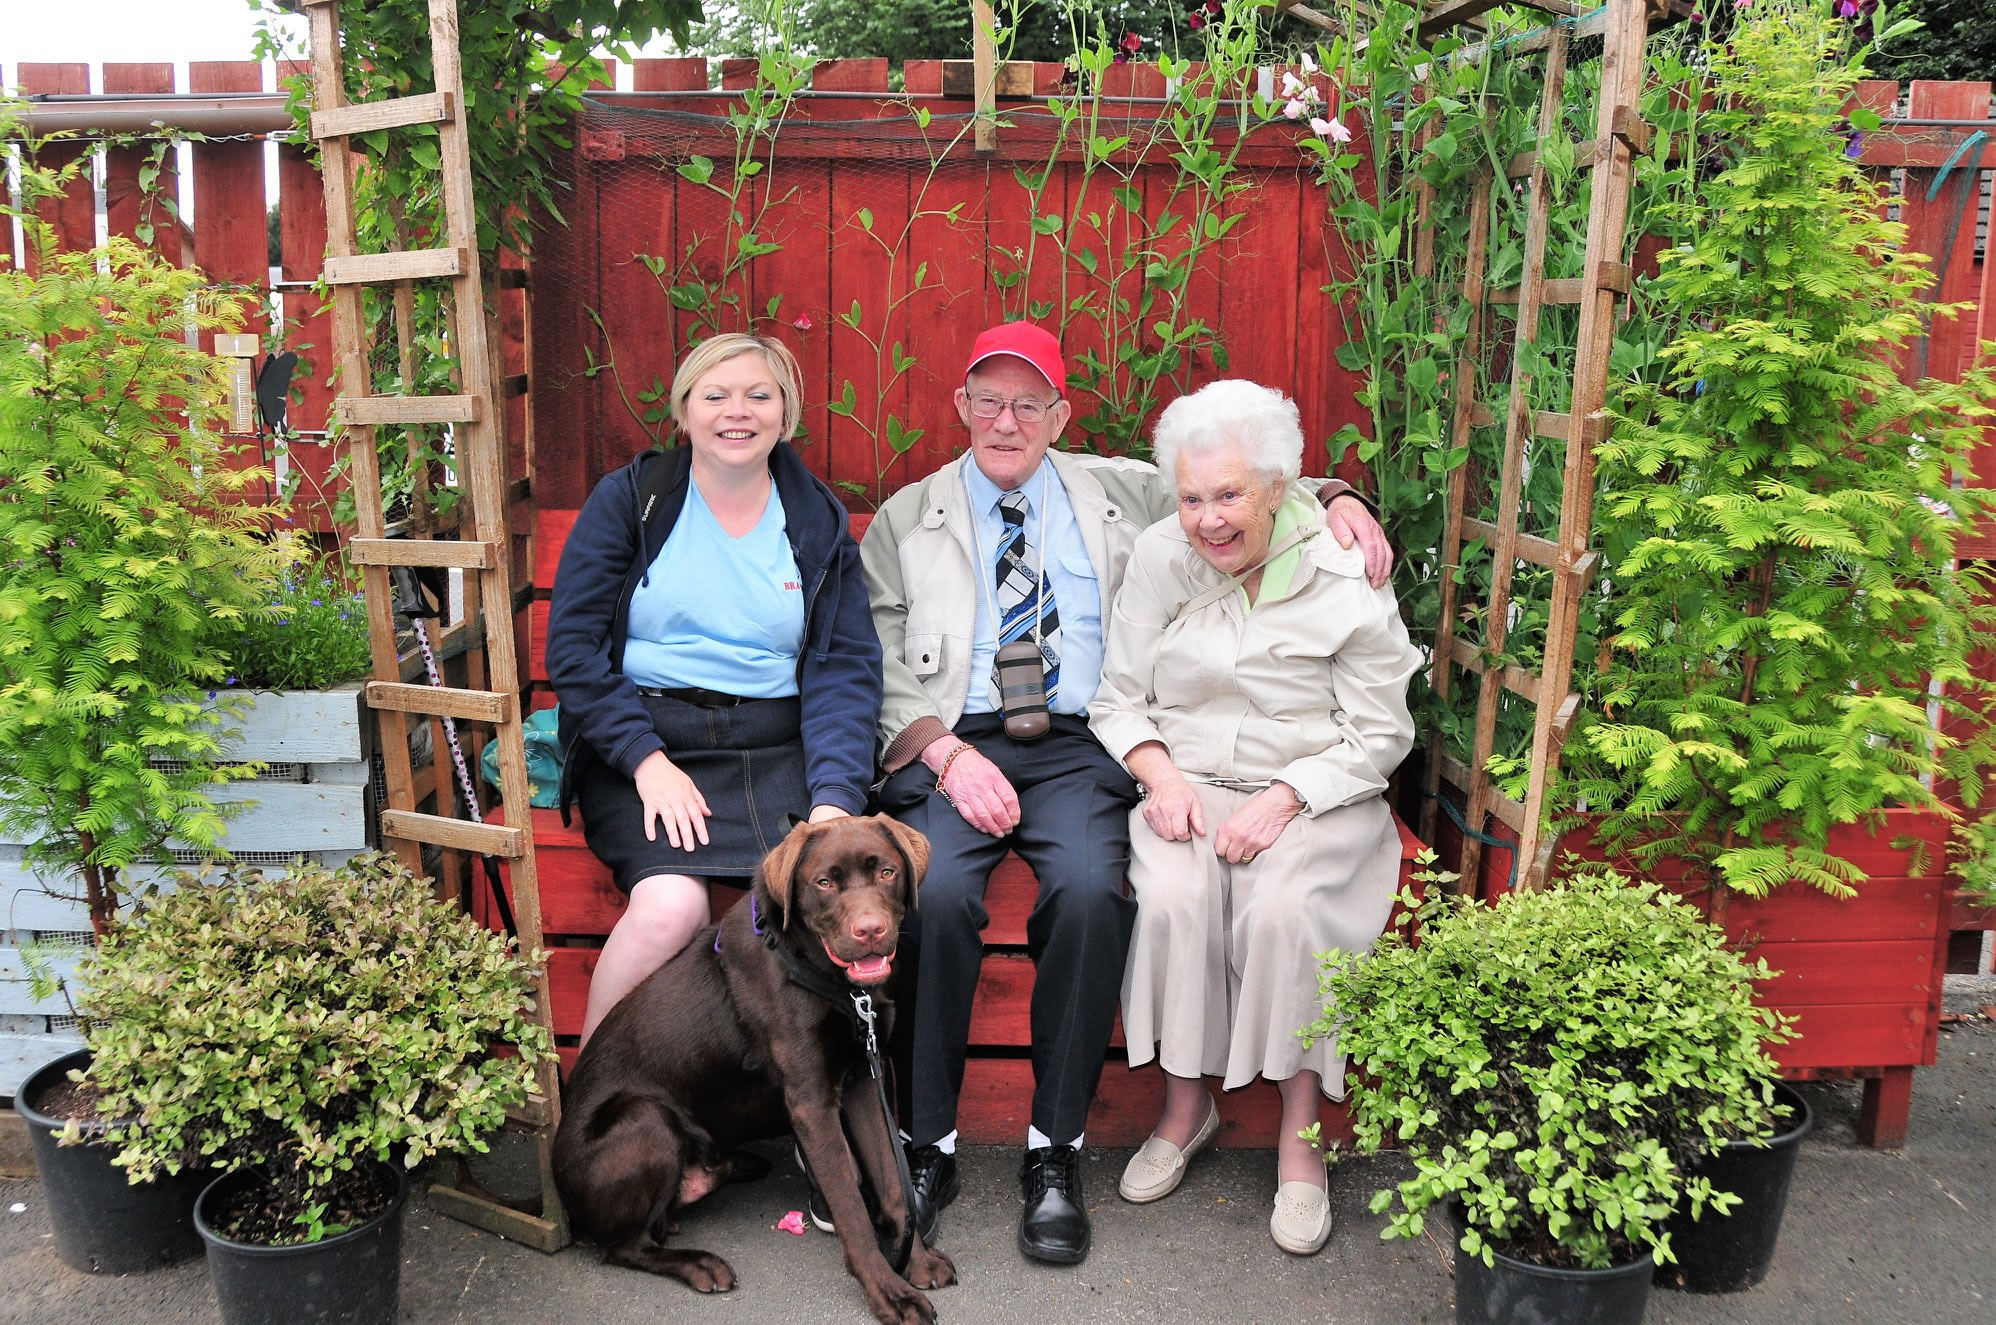 lady with dog and elderly couple